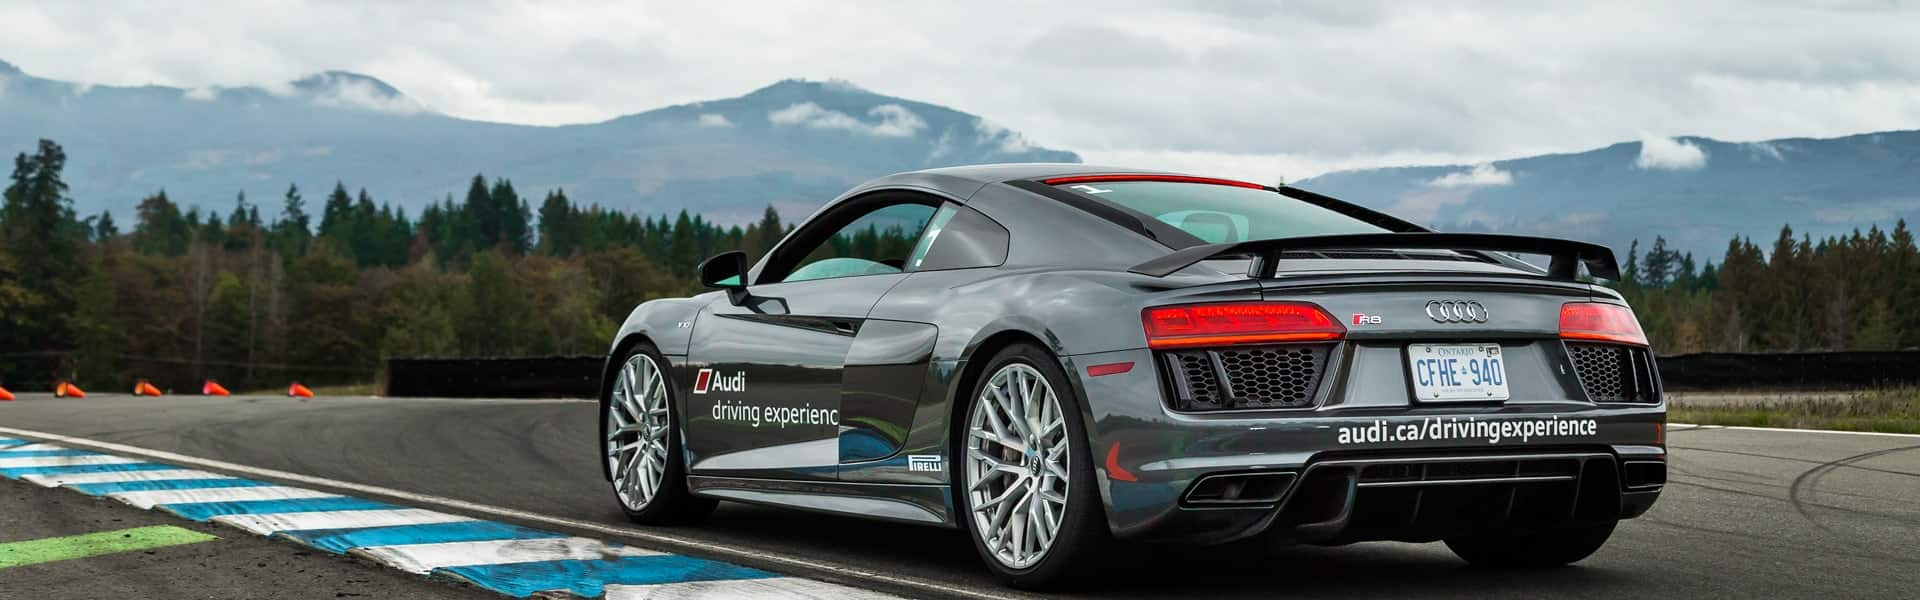 Audi Sport driving experience